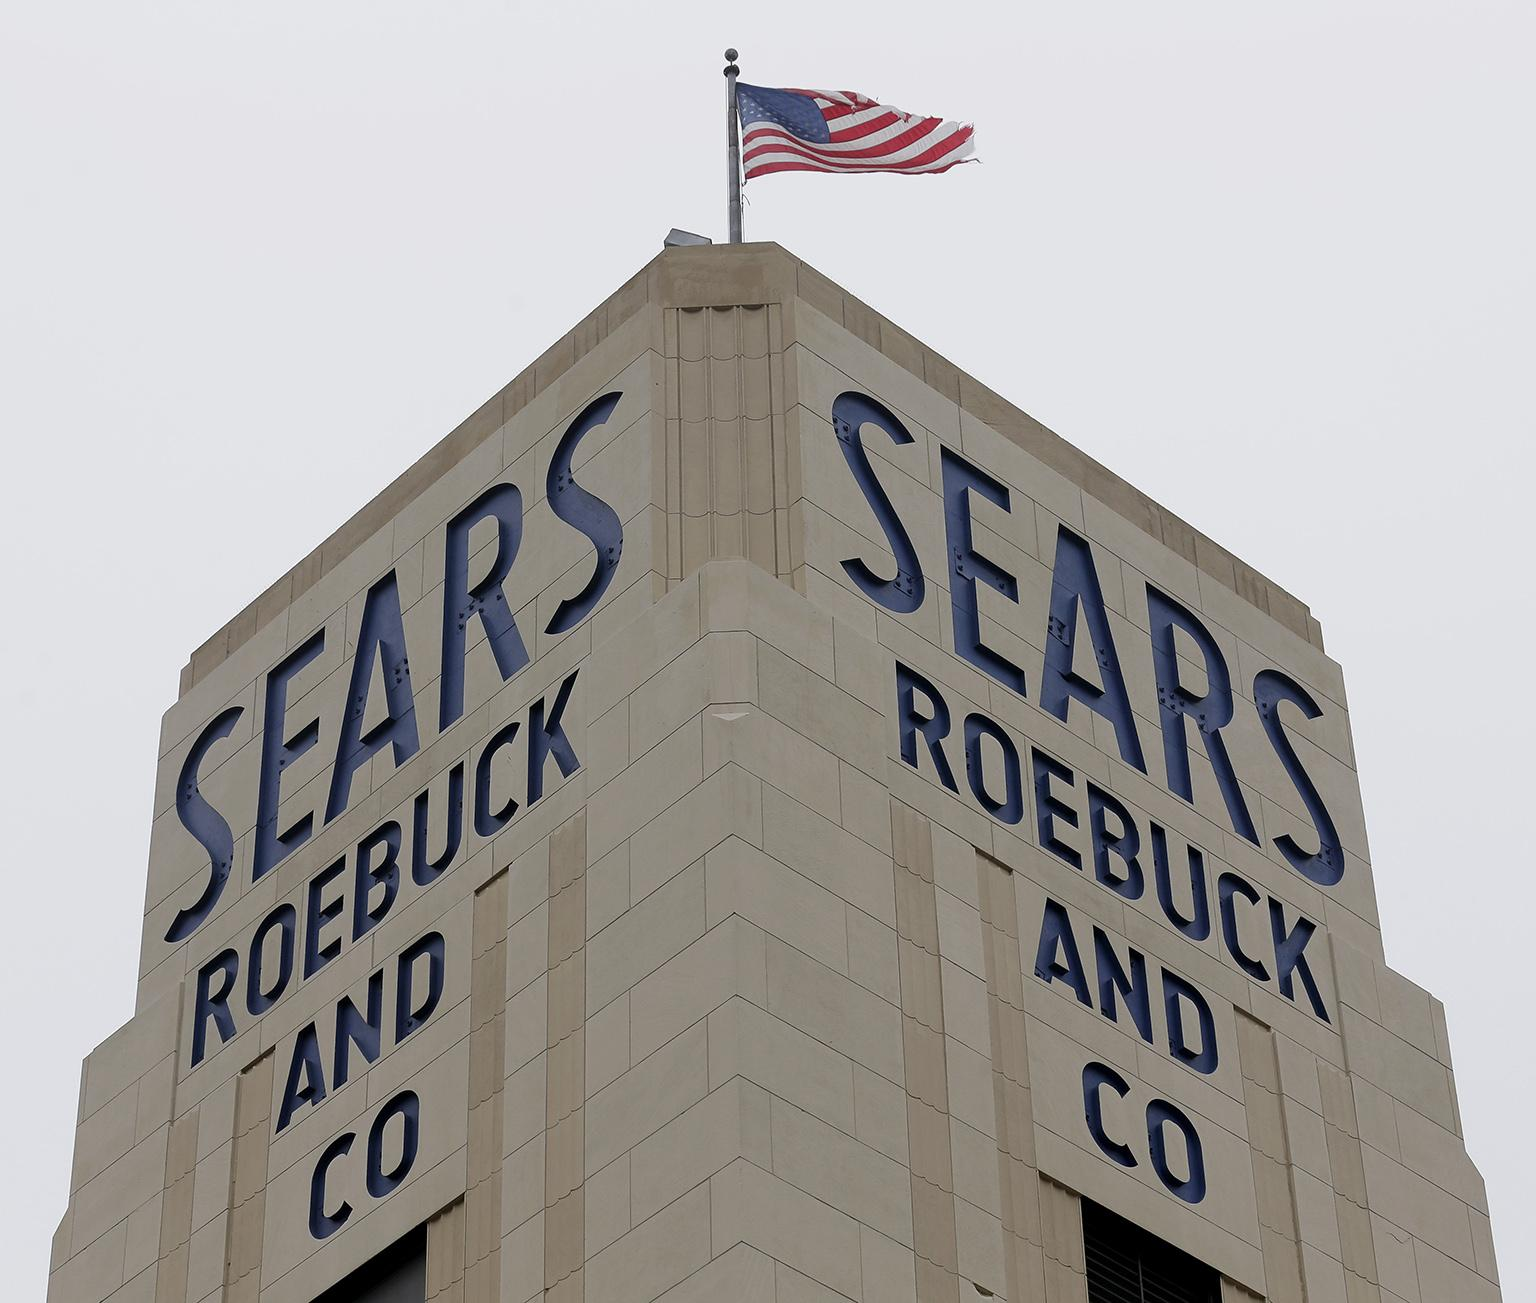 In this Jan. 8, 2019, file photo an American flag flies above a Sears store in Hackensack, N.J. (AP Photo / Seth Wenig, File)